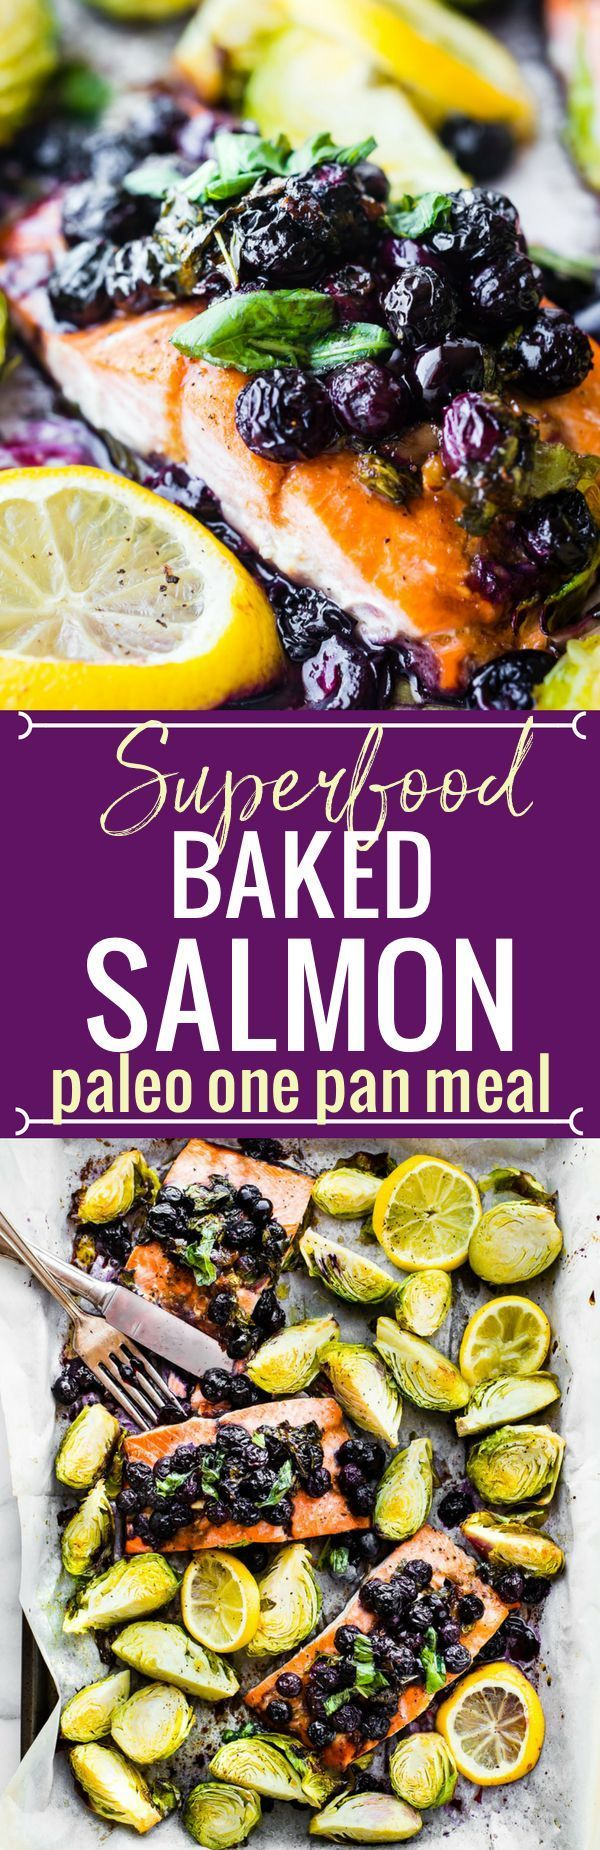 One pan Paleo SUPERFOOD Baked Salmon! This baked salmon recipe is ready in 20 minutes and packed full of nutrients. A nourishing, whole 30 friendly, flavorful meal! Salmon baked with a zippy basil blueberry balsamic topping and crispy Brüssel sprouts!   Get your sheet pan ready for dinner! http://www.cottercrunch.com